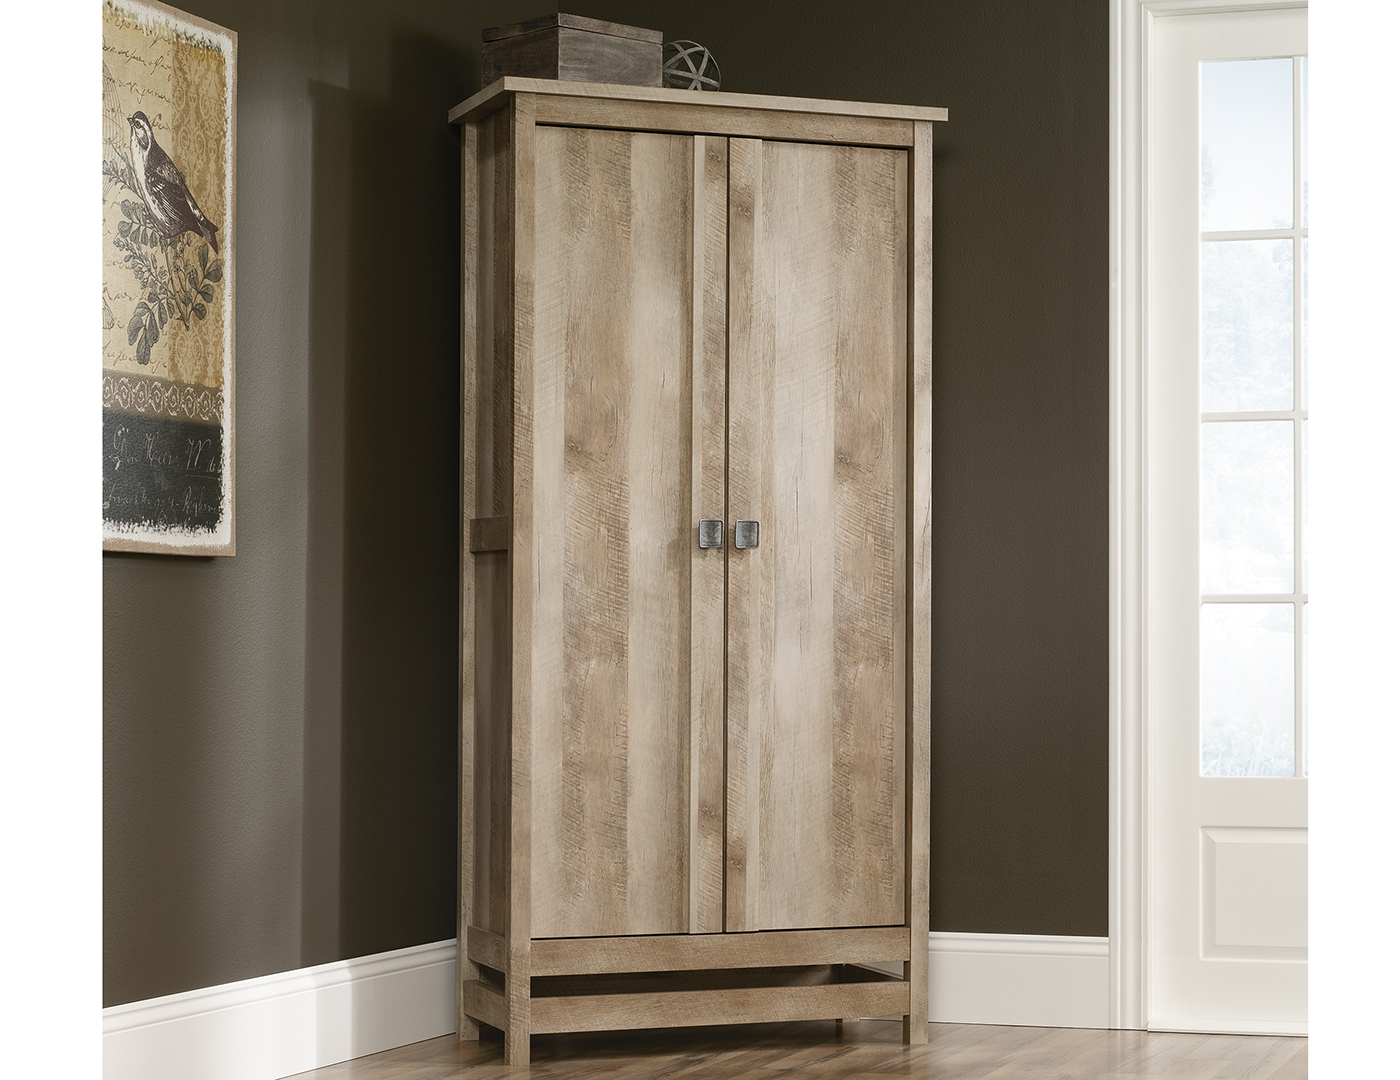 Cannery Bridge Storage Cabinet